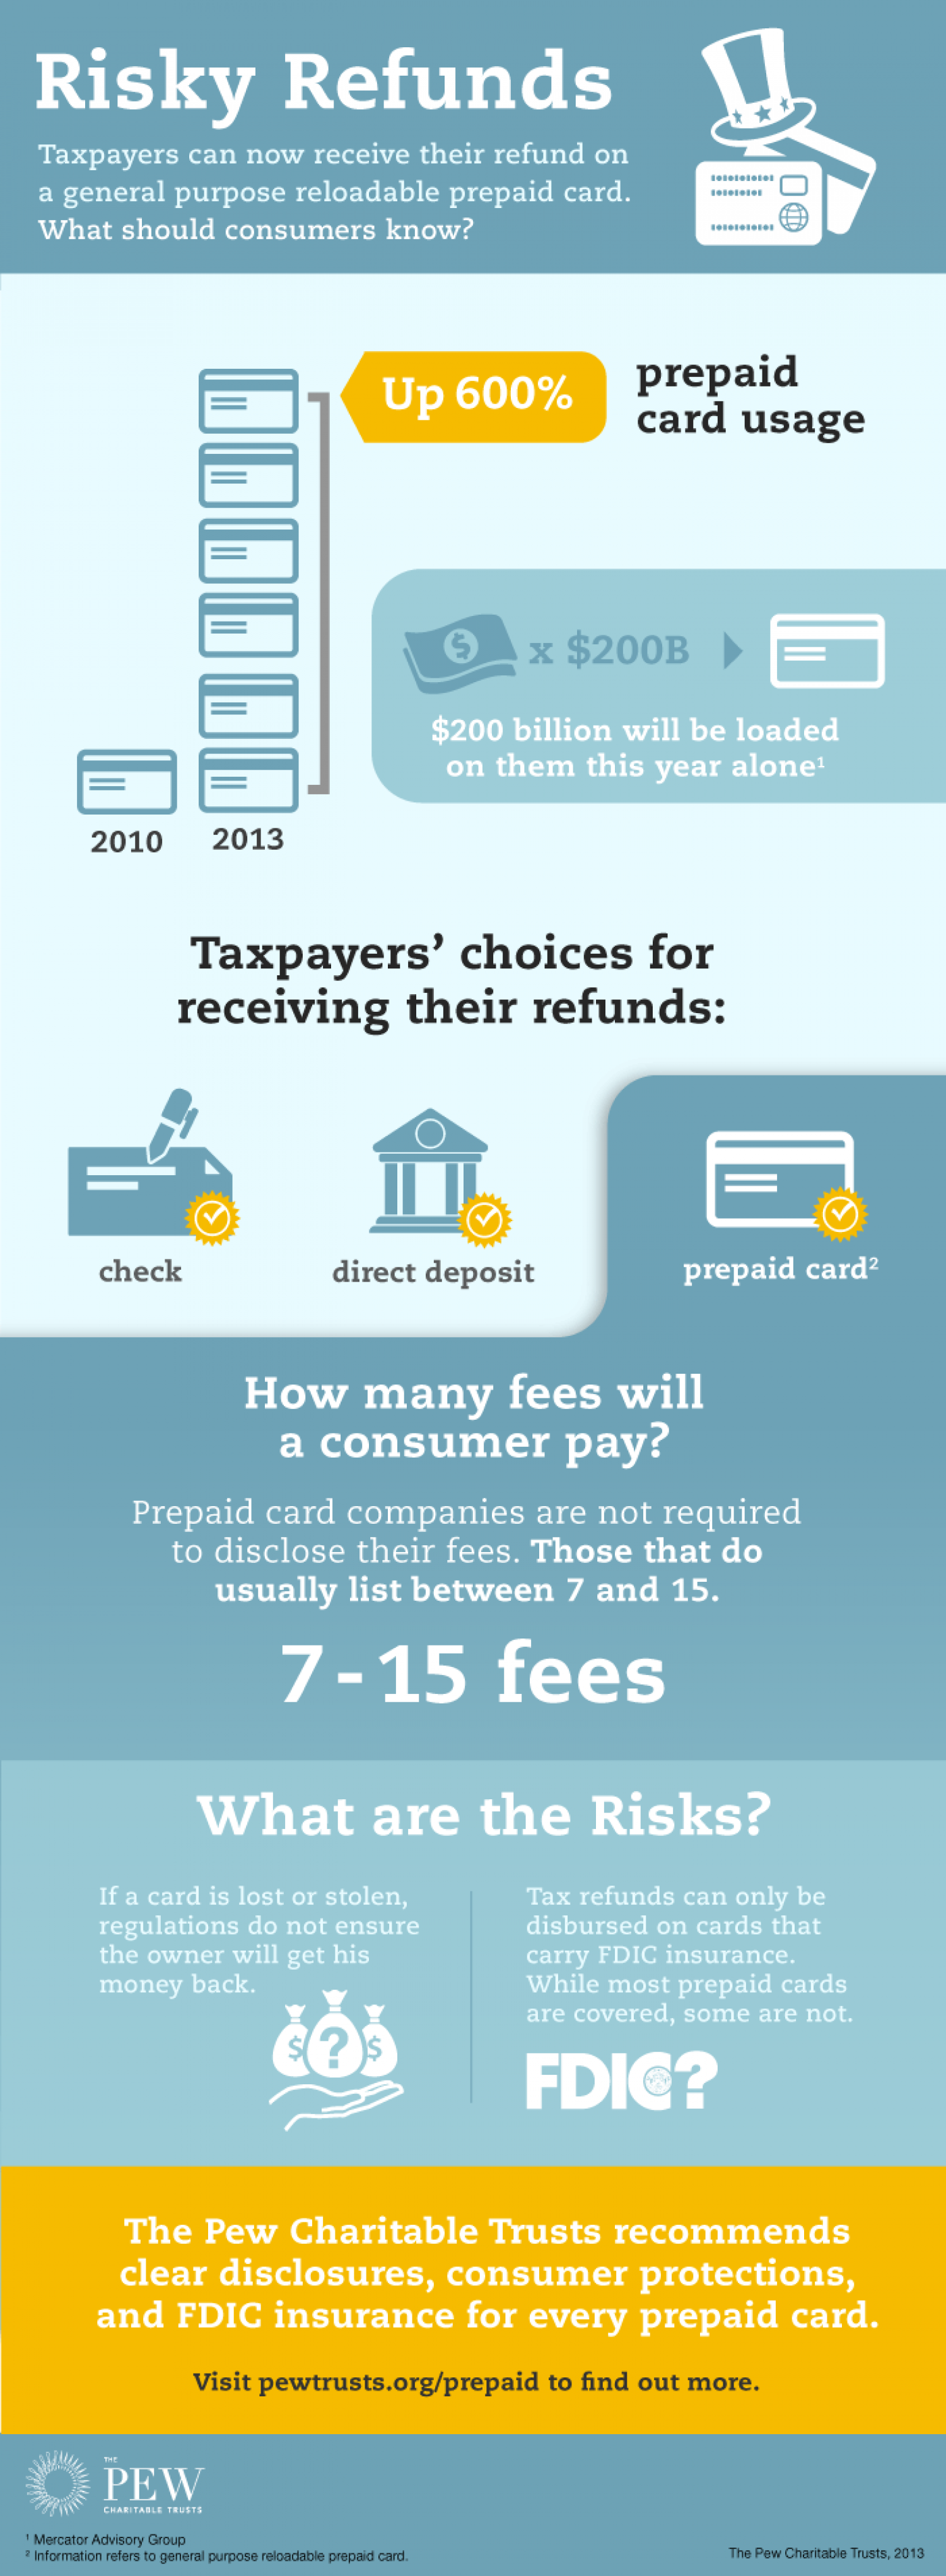 Risky Refunds Infographic